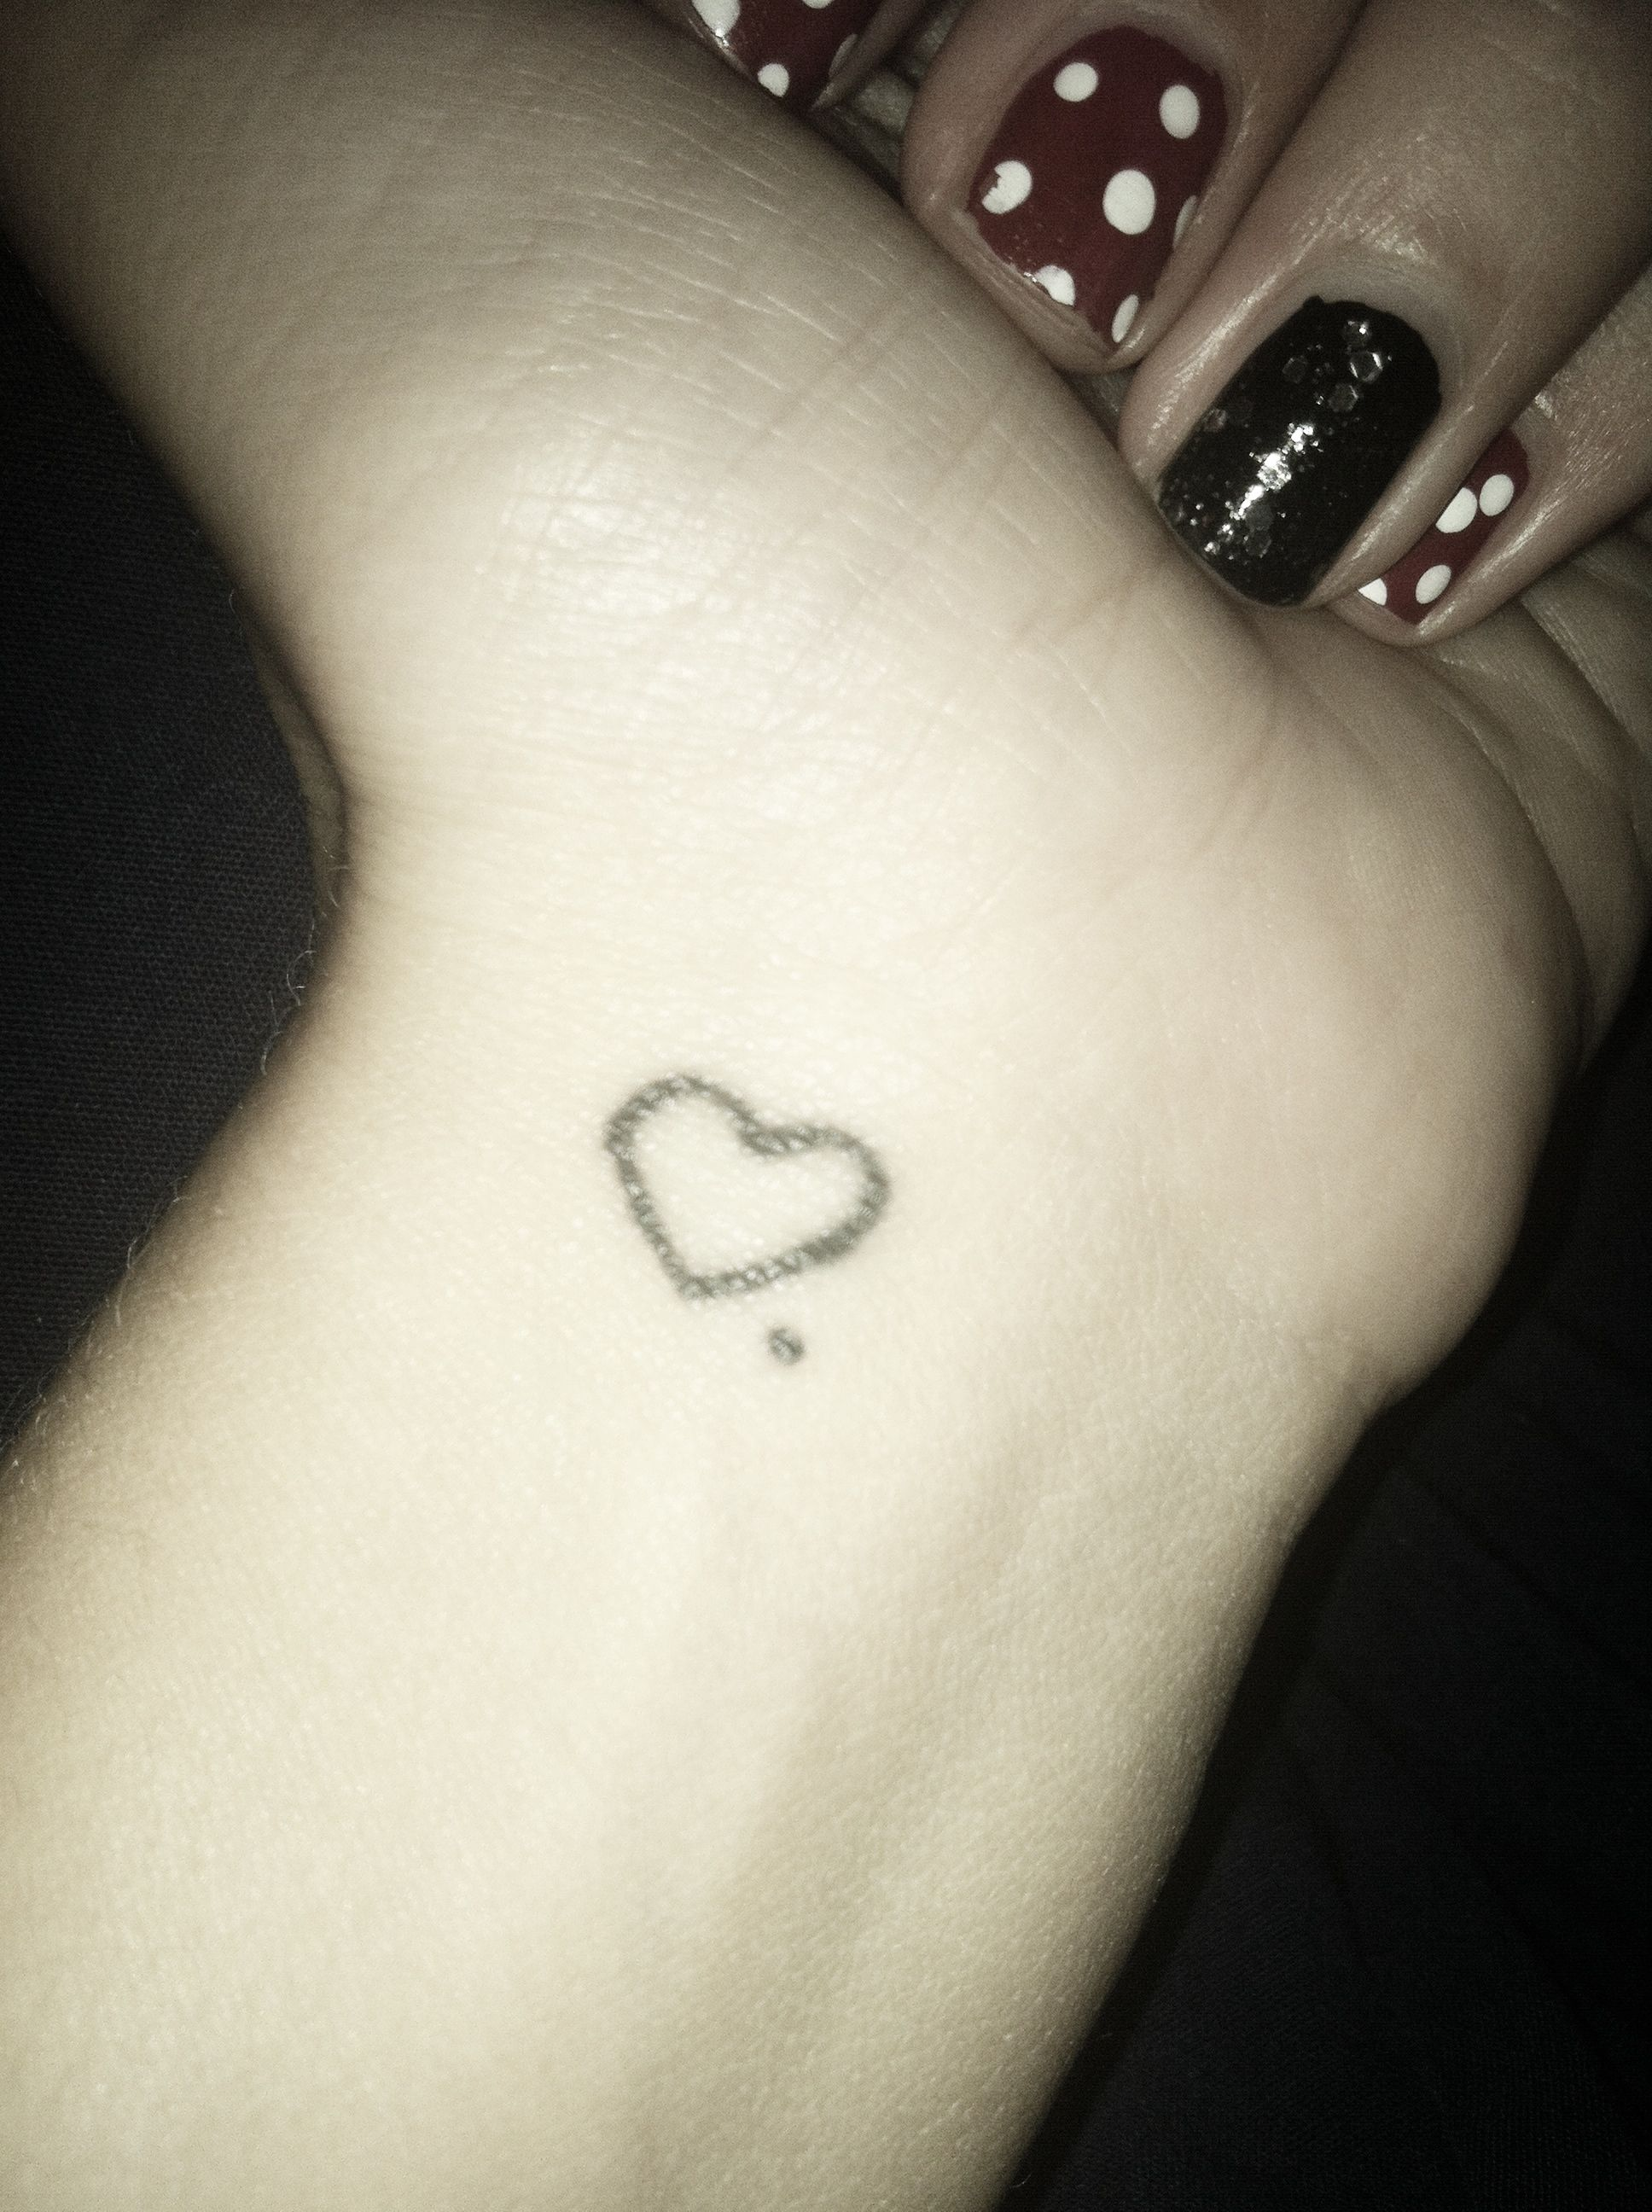 Wrist heart tattoo